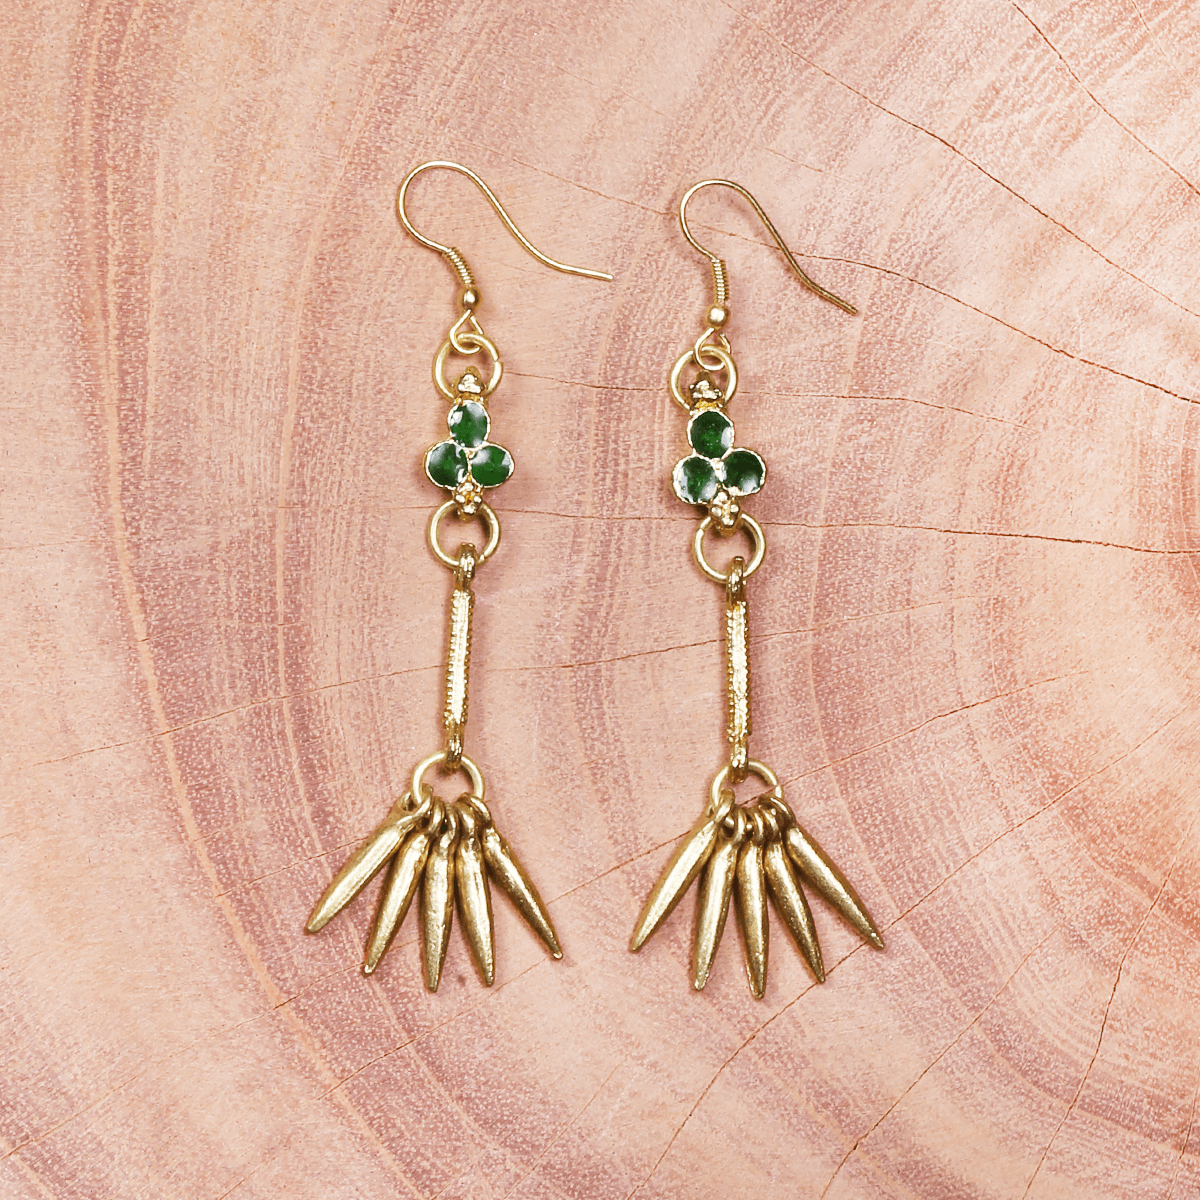 Bohemian Fashion Metal Earrings - Green